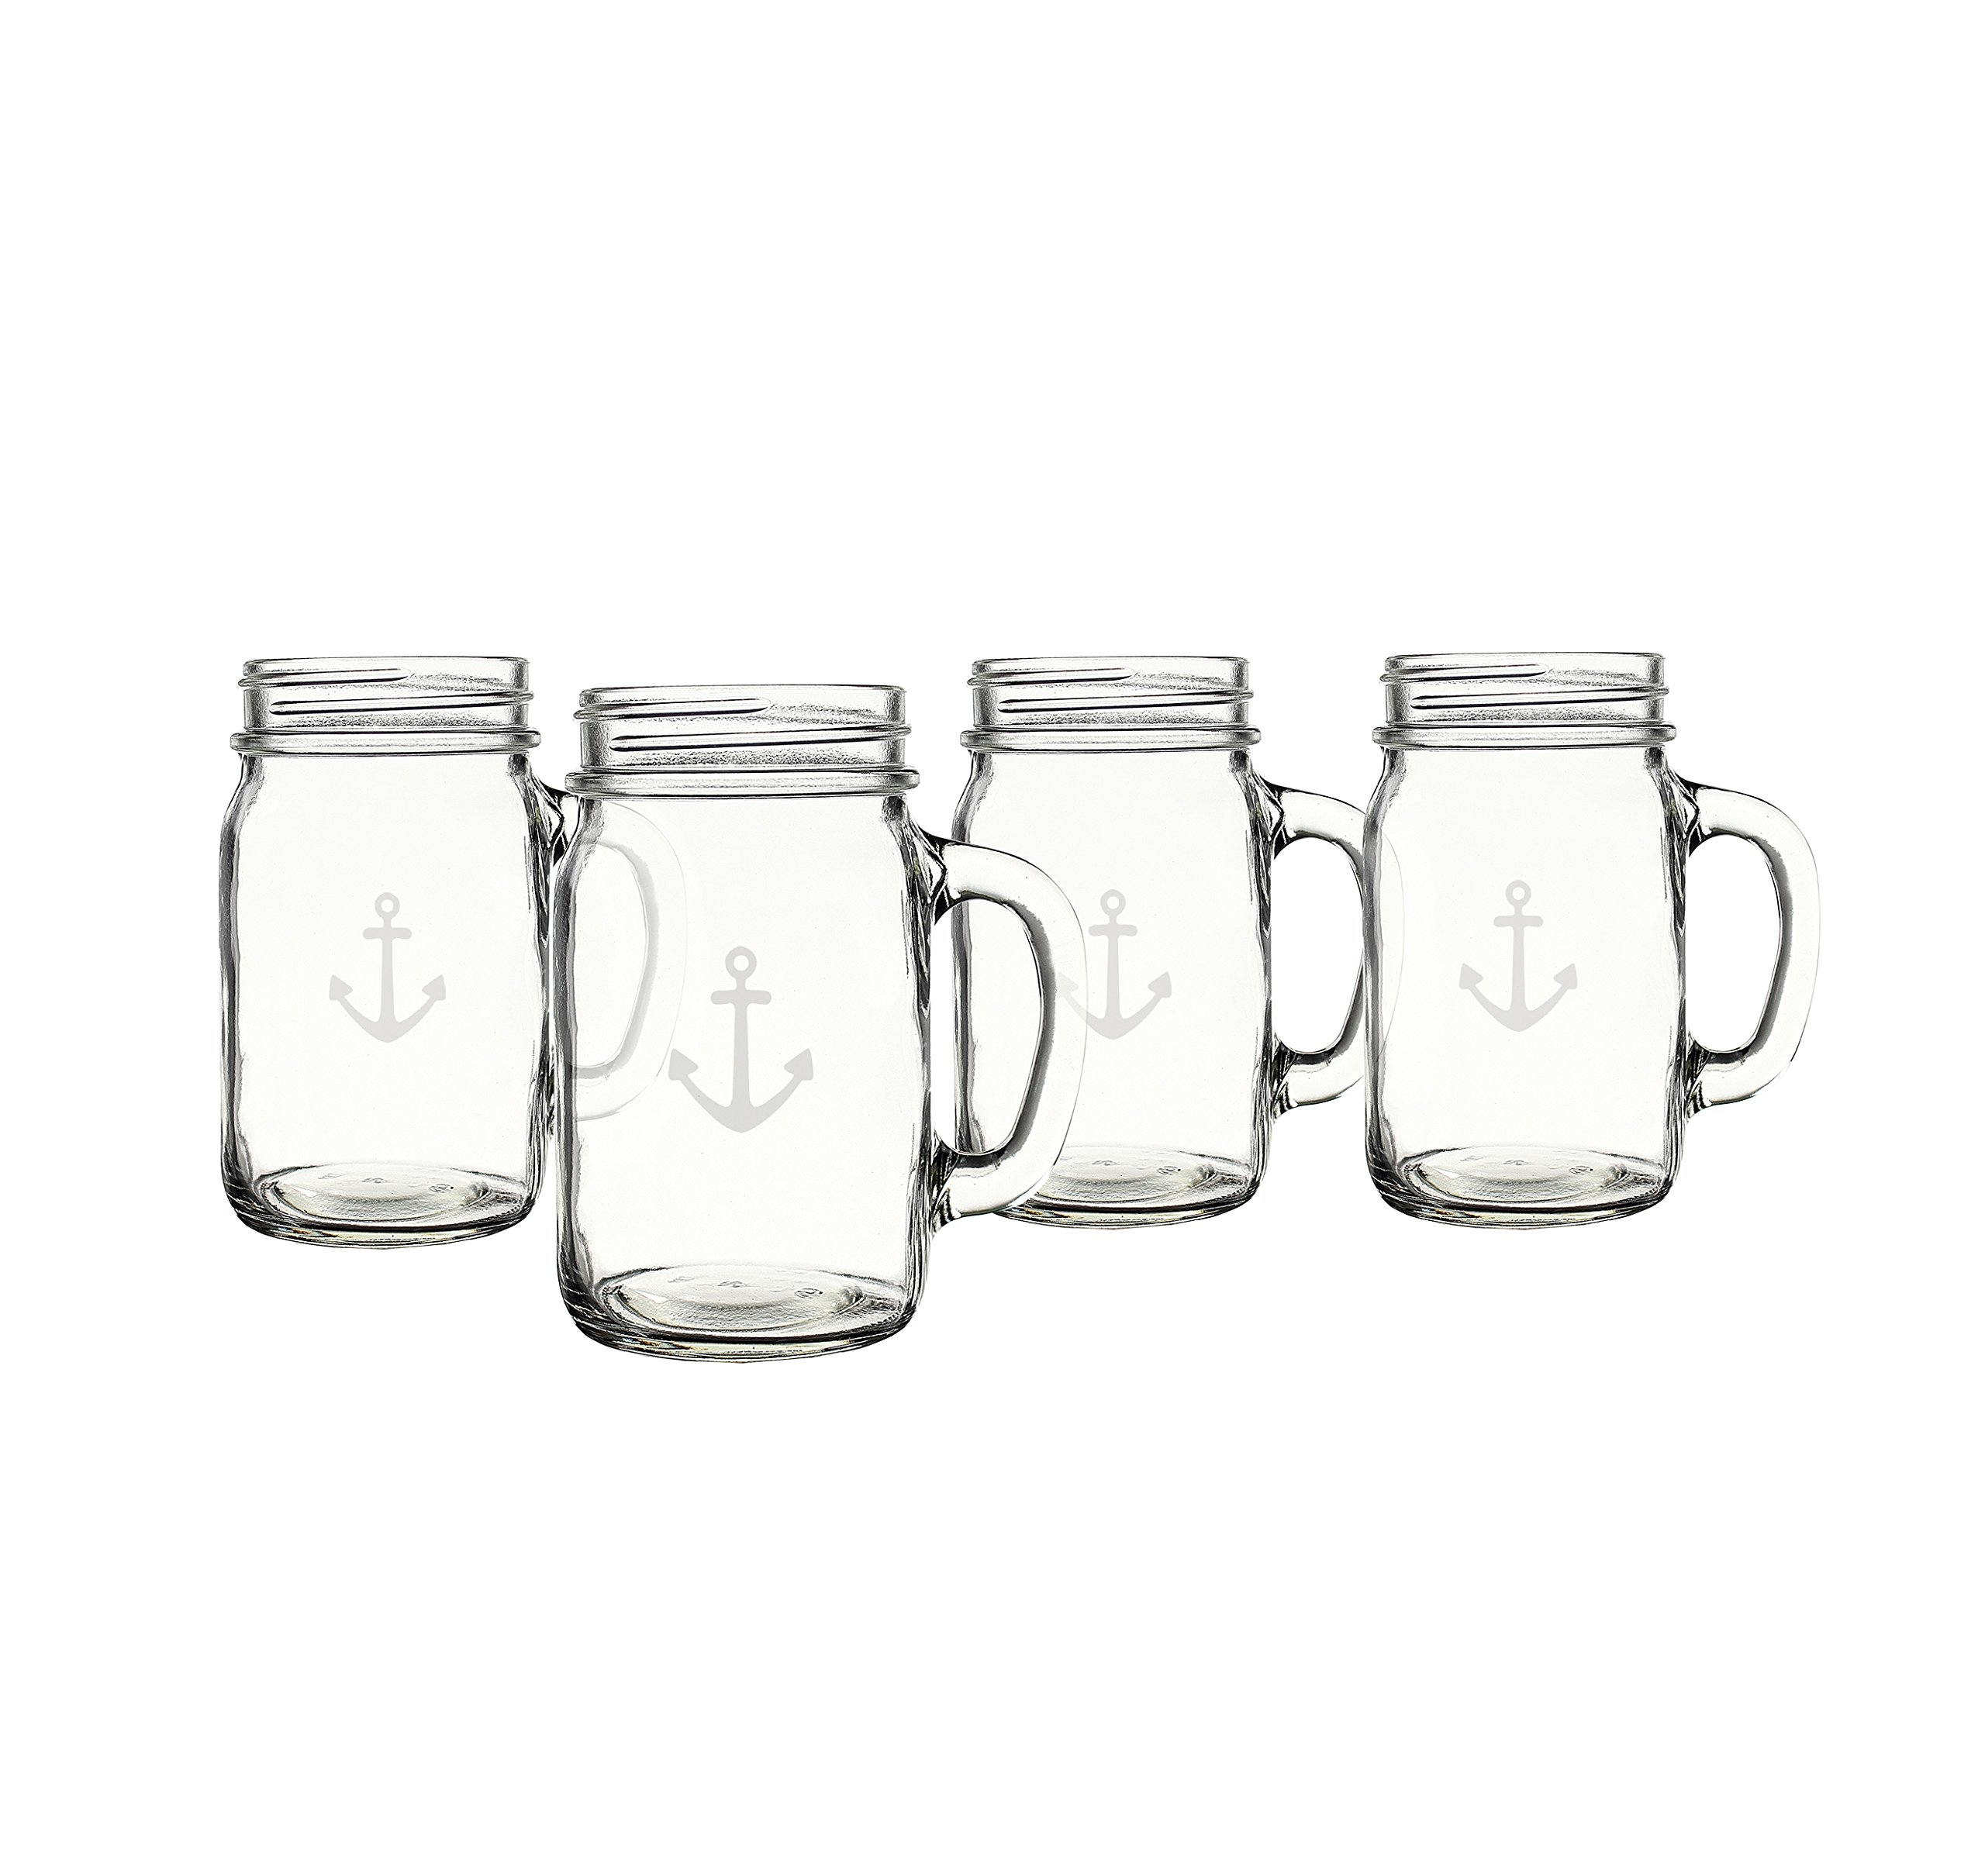 Cathy's Concepts CCA1190 Anchor Old Fashioned Drinking Jars Set Of 4 by Cathy's Concepts (Image #2)